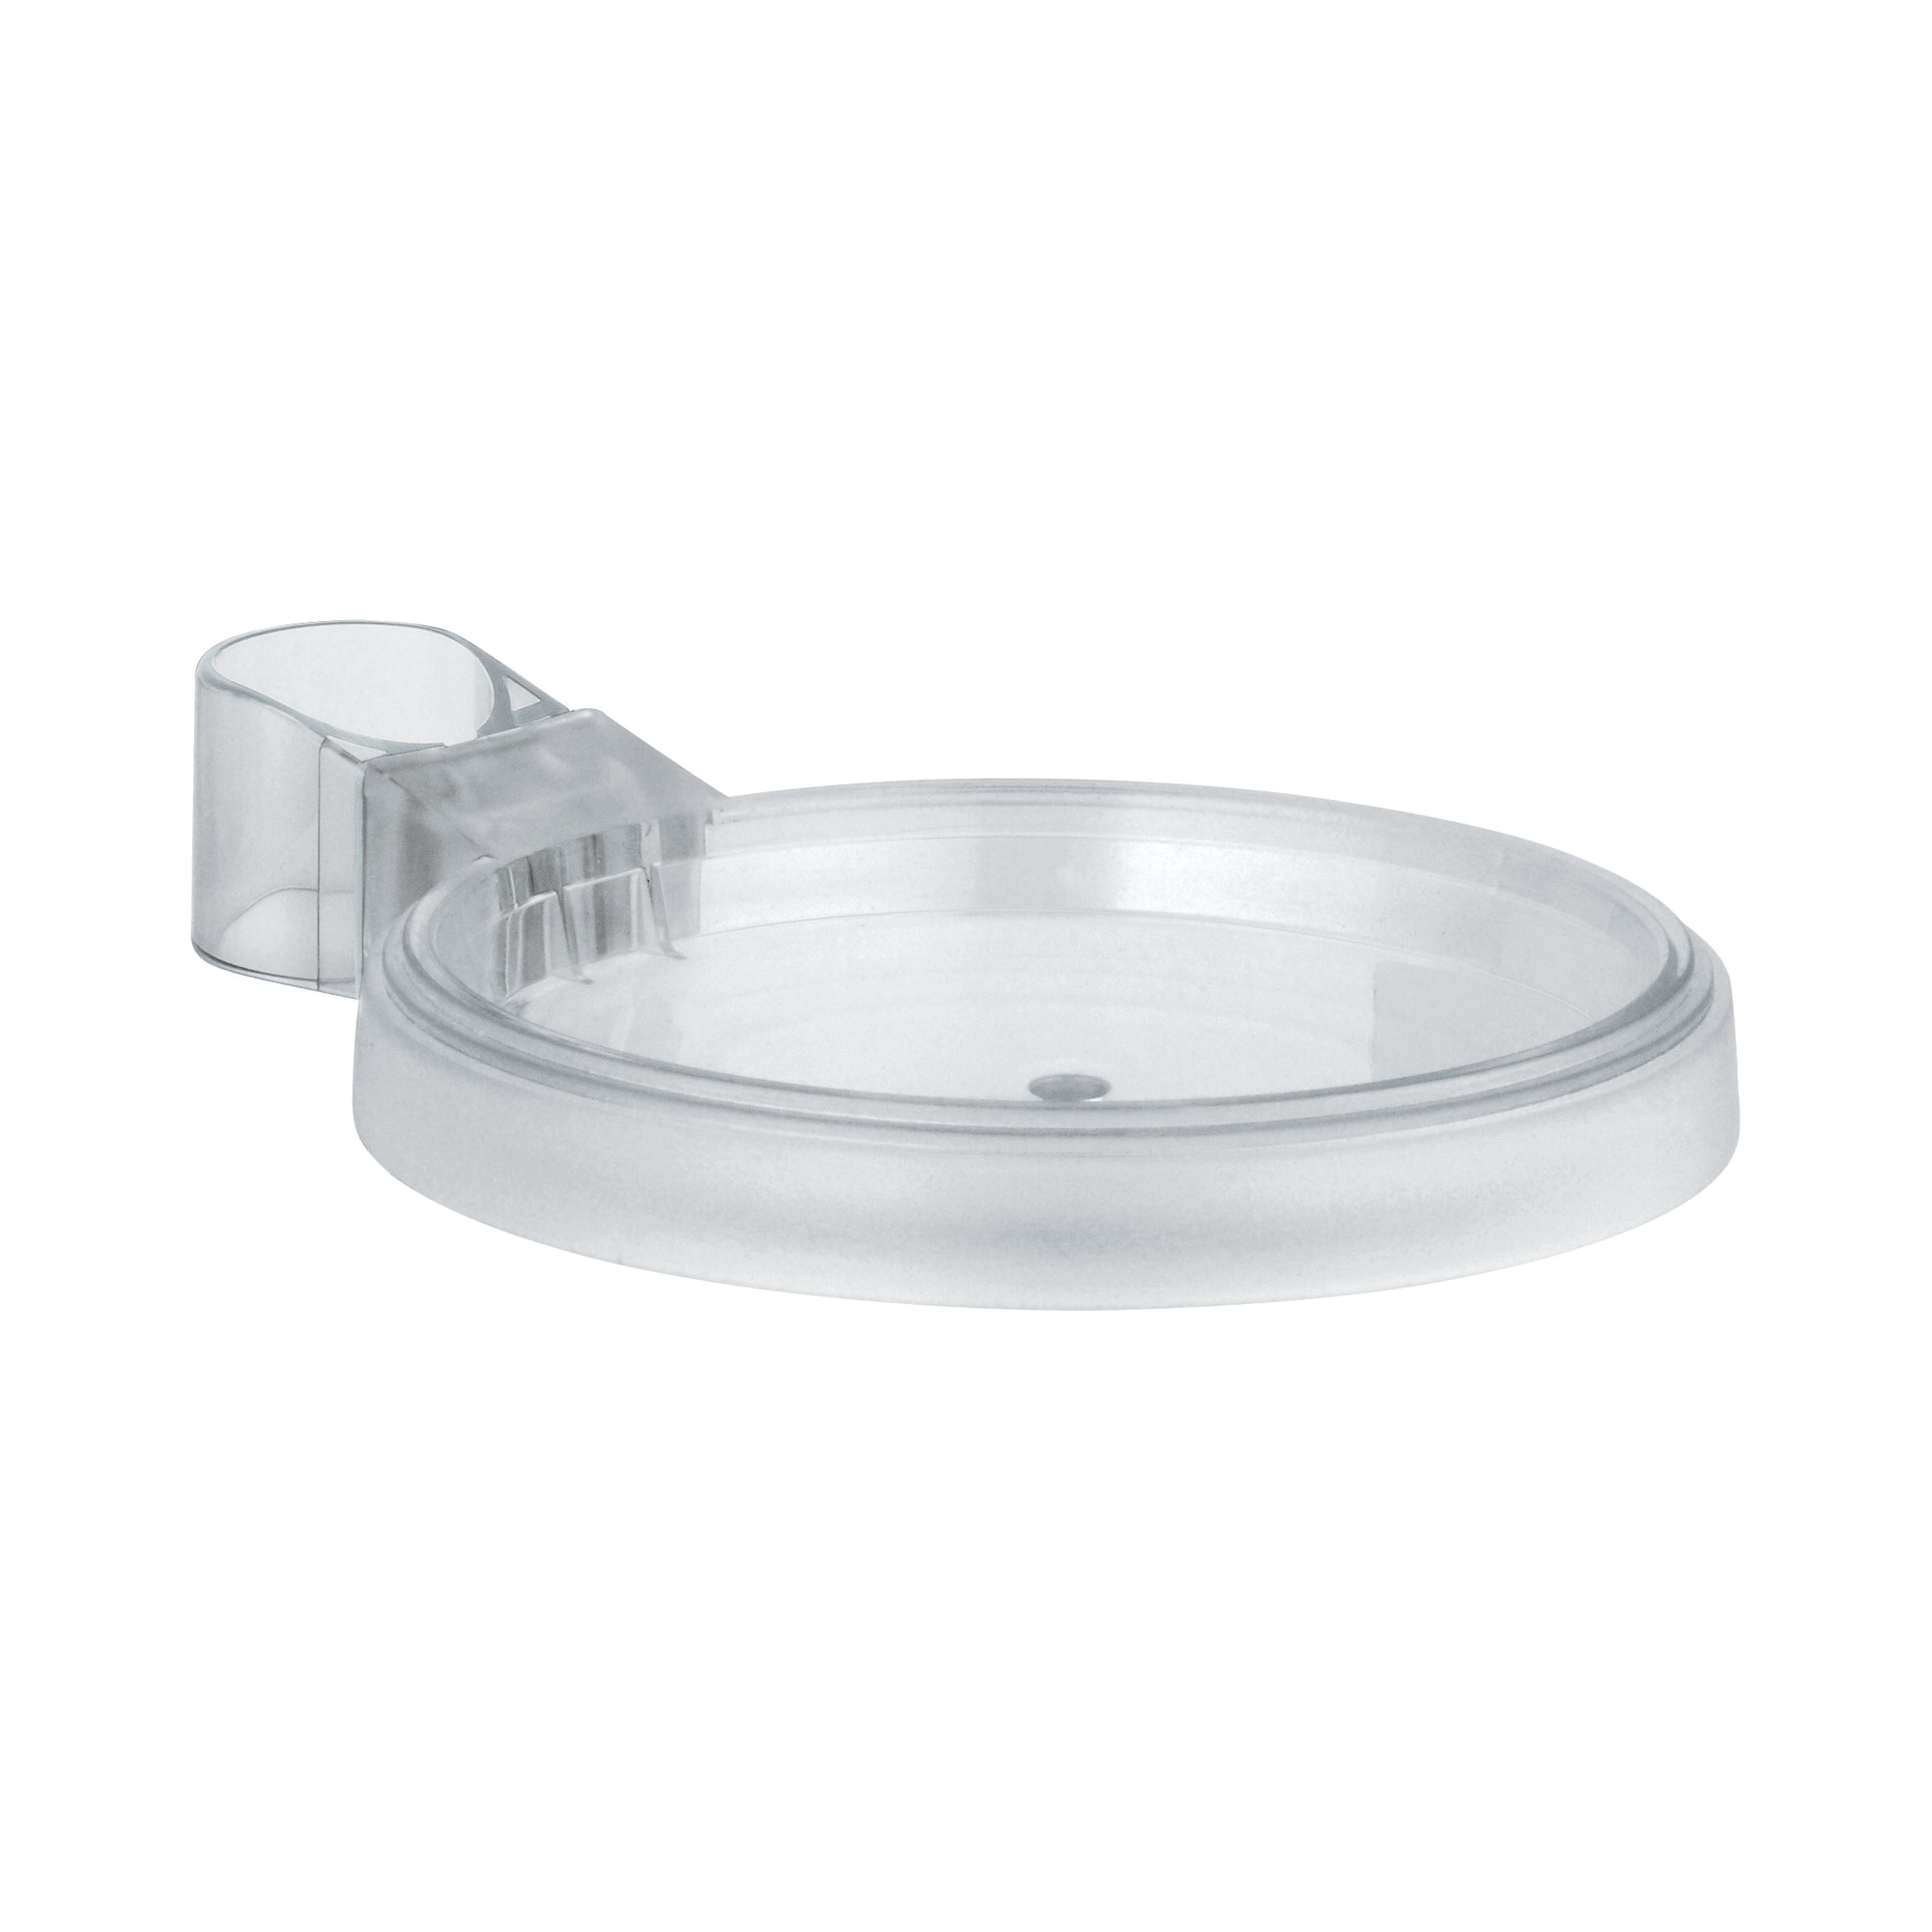 GROHE 27206000 Soap Dish, 136 mm D, Plastic, Chrome Plated, Import